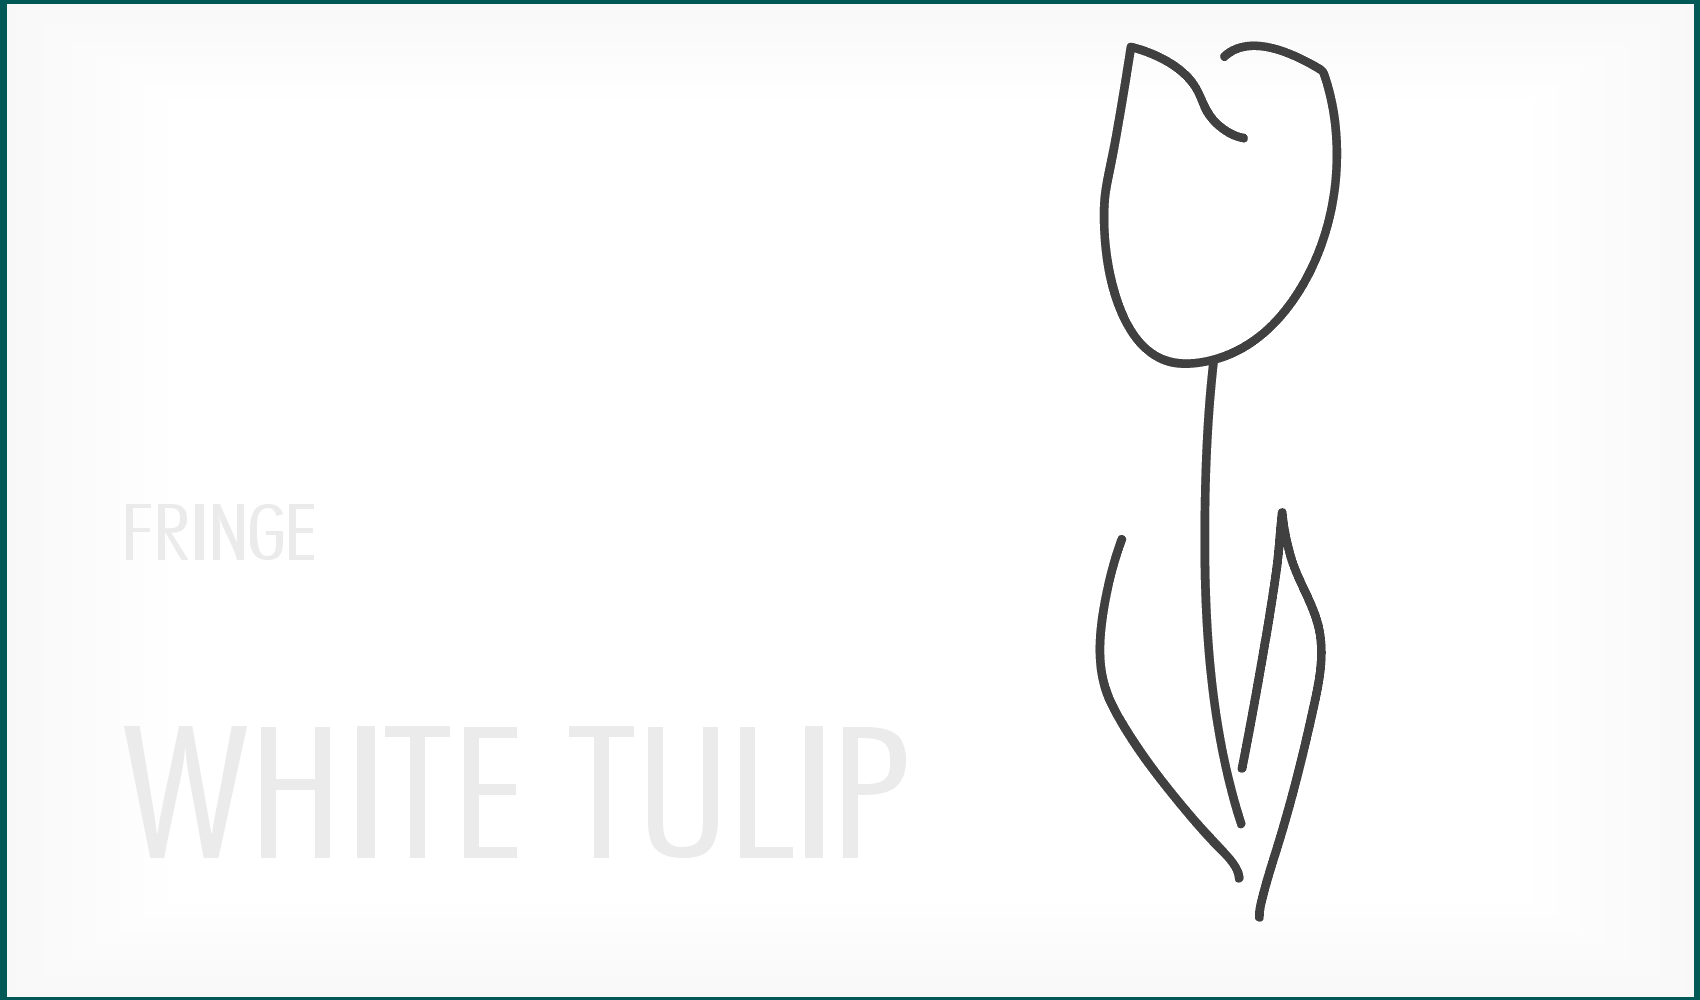 Fringe White Tulip Tattoo Wallpaper